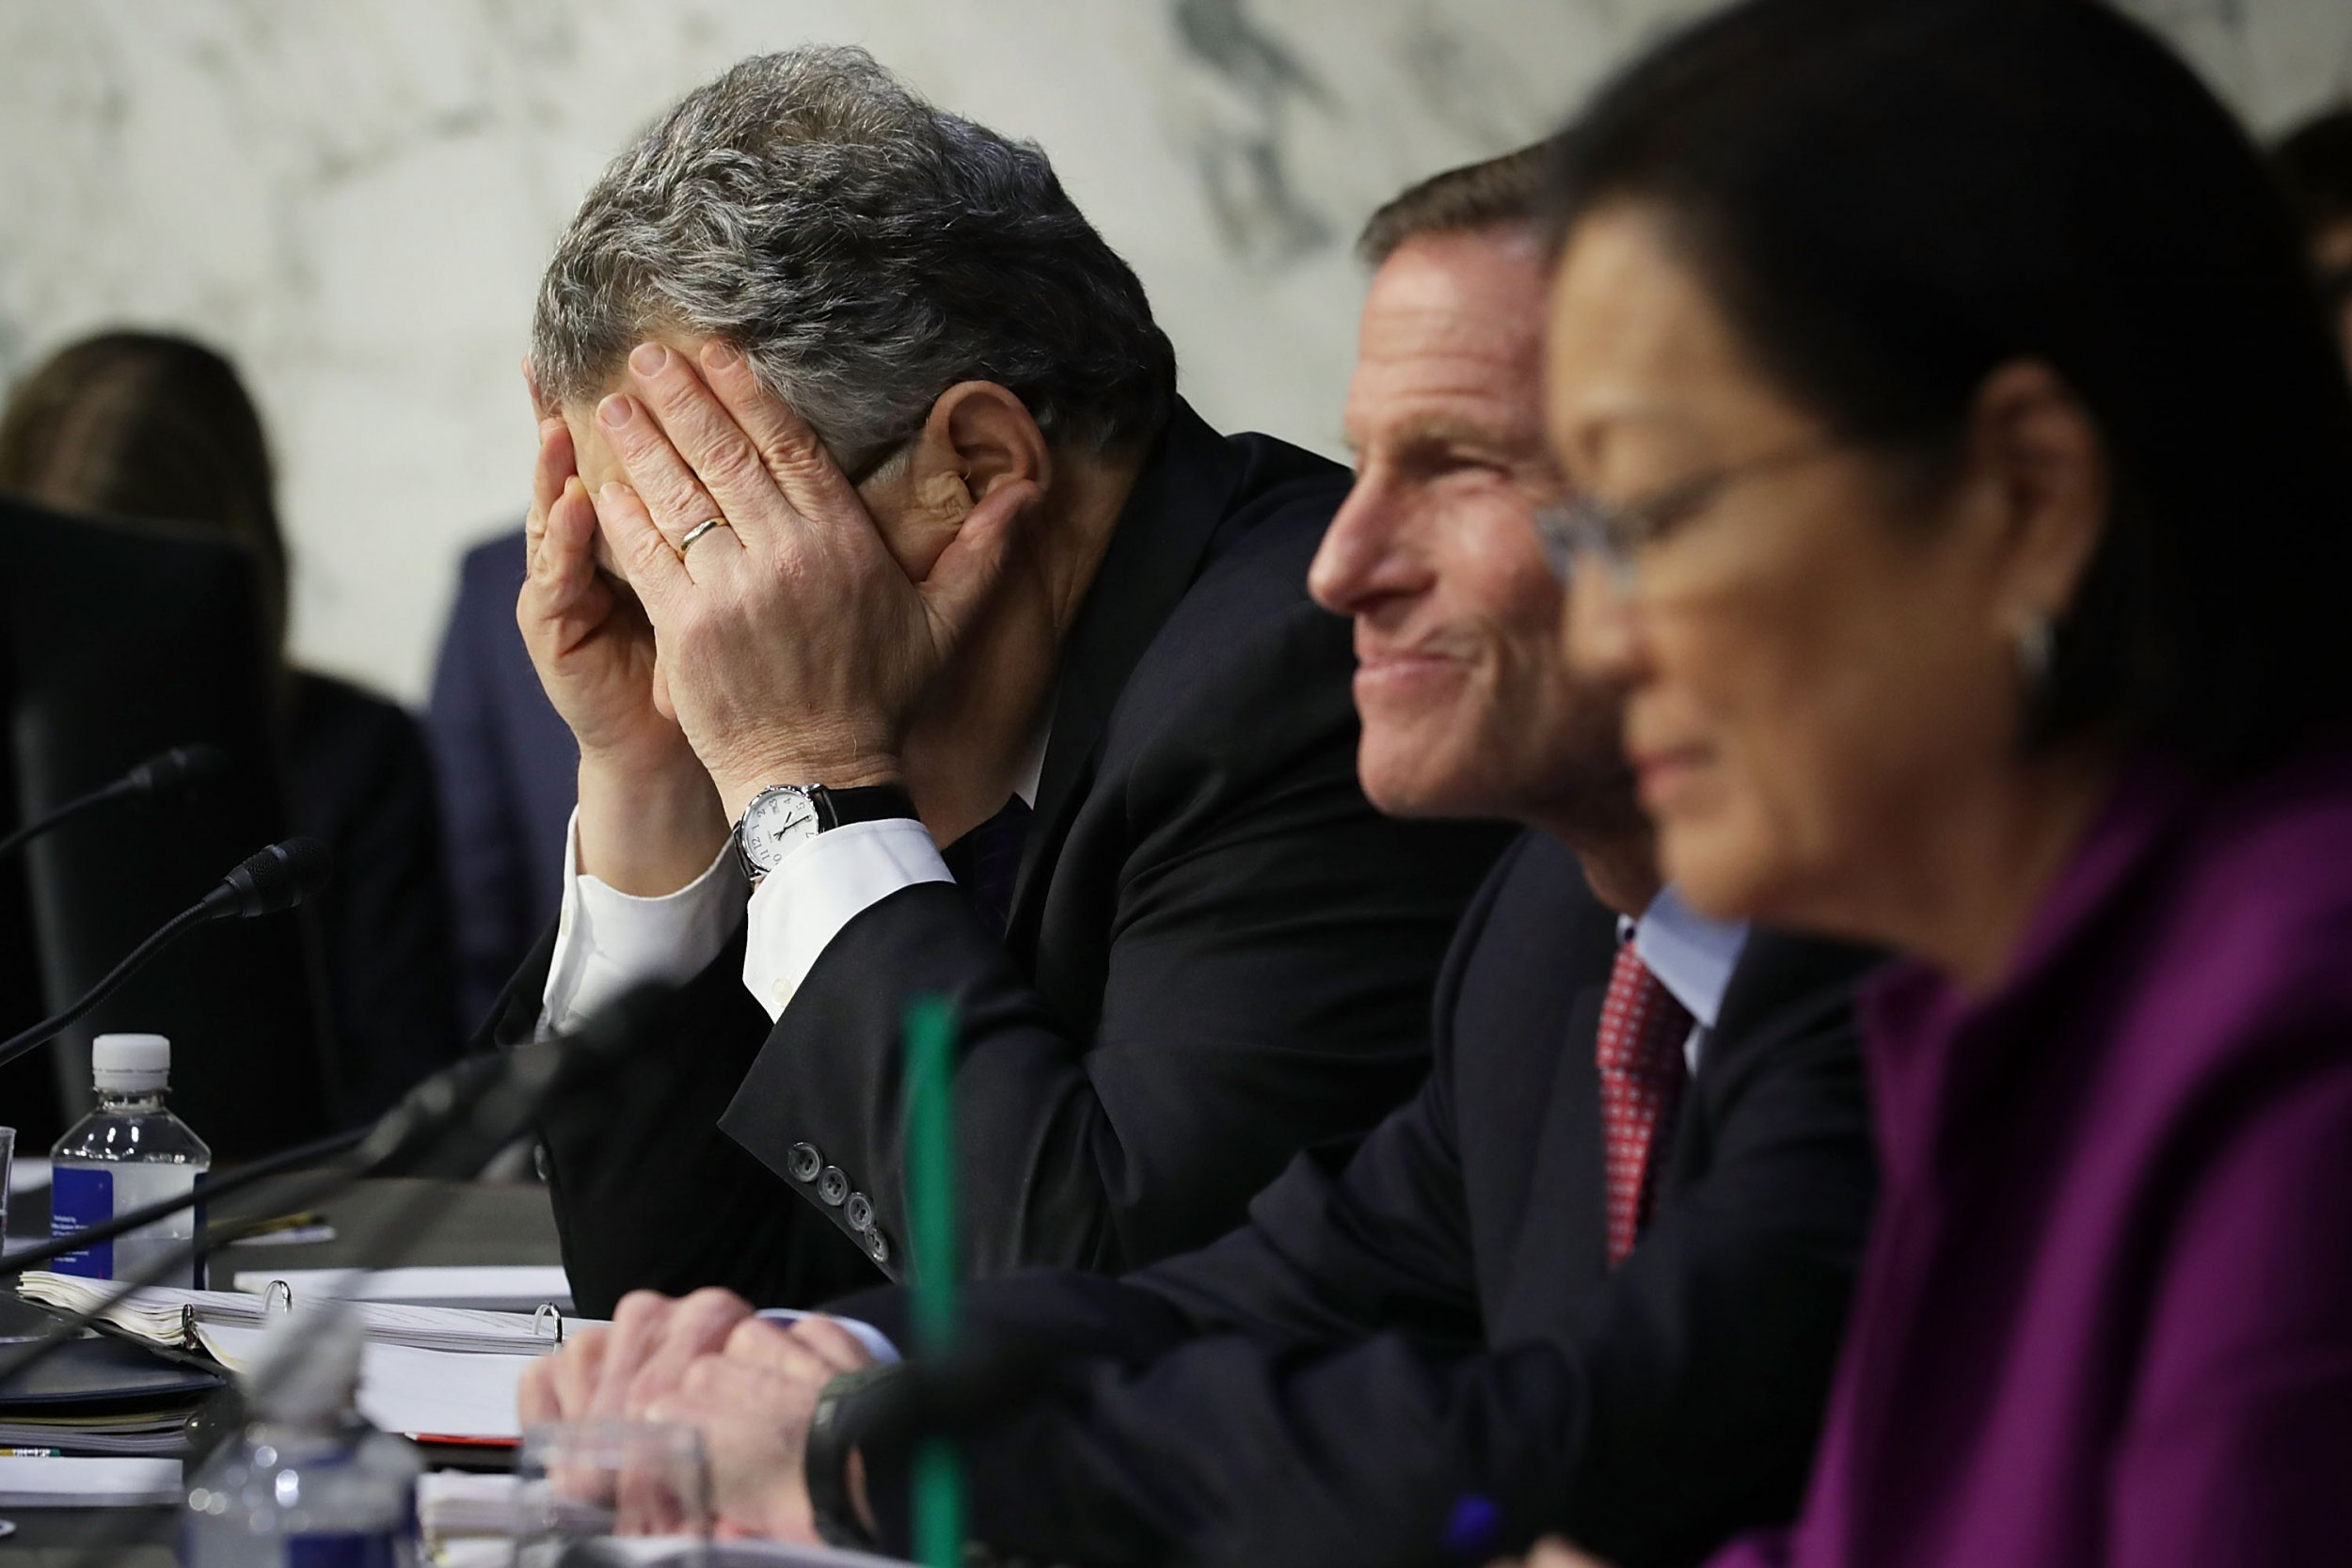 Lindsay Menz Al Franken Photo >> Al Franken 'Can't Say' He Didn't Grope Women In 'Crowded Chaotic Situations'